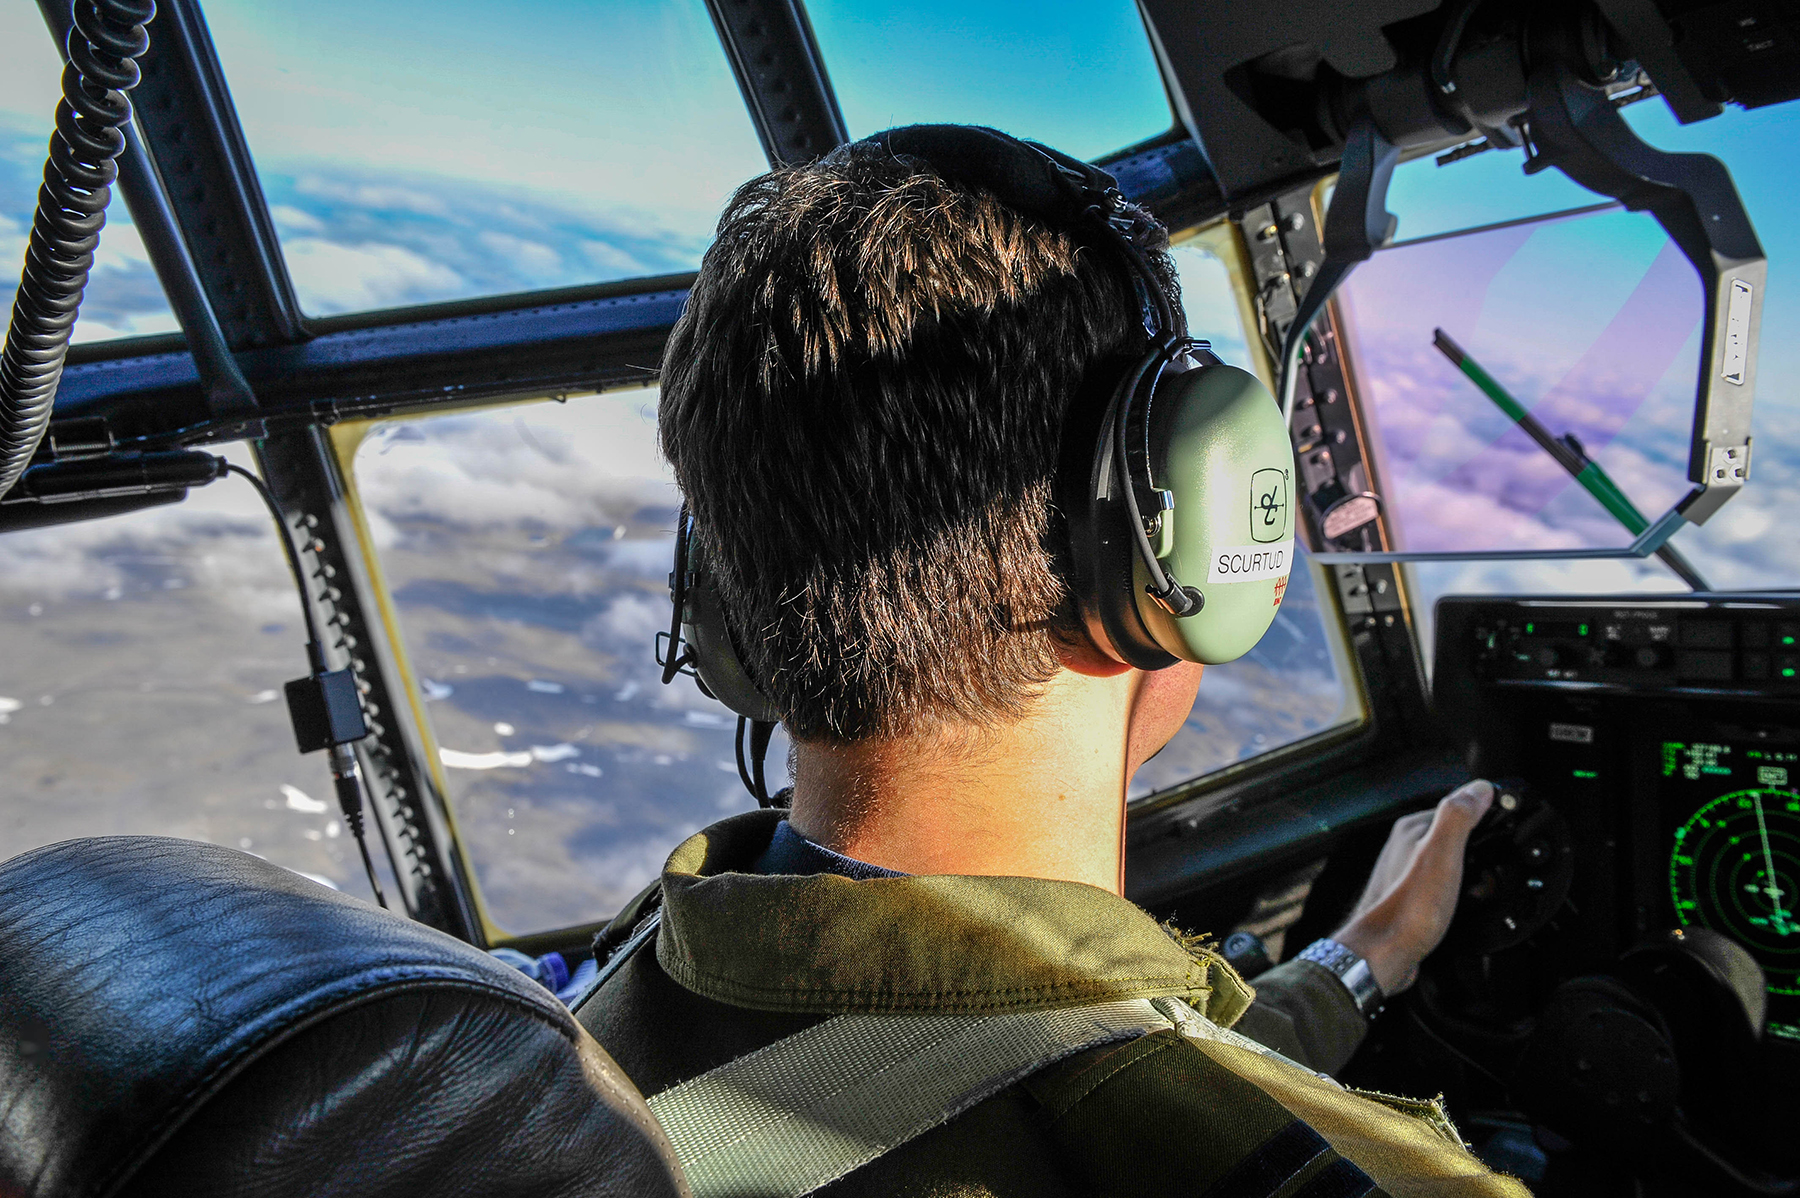 A man pilots an aircraft above rough terrain and clouds.